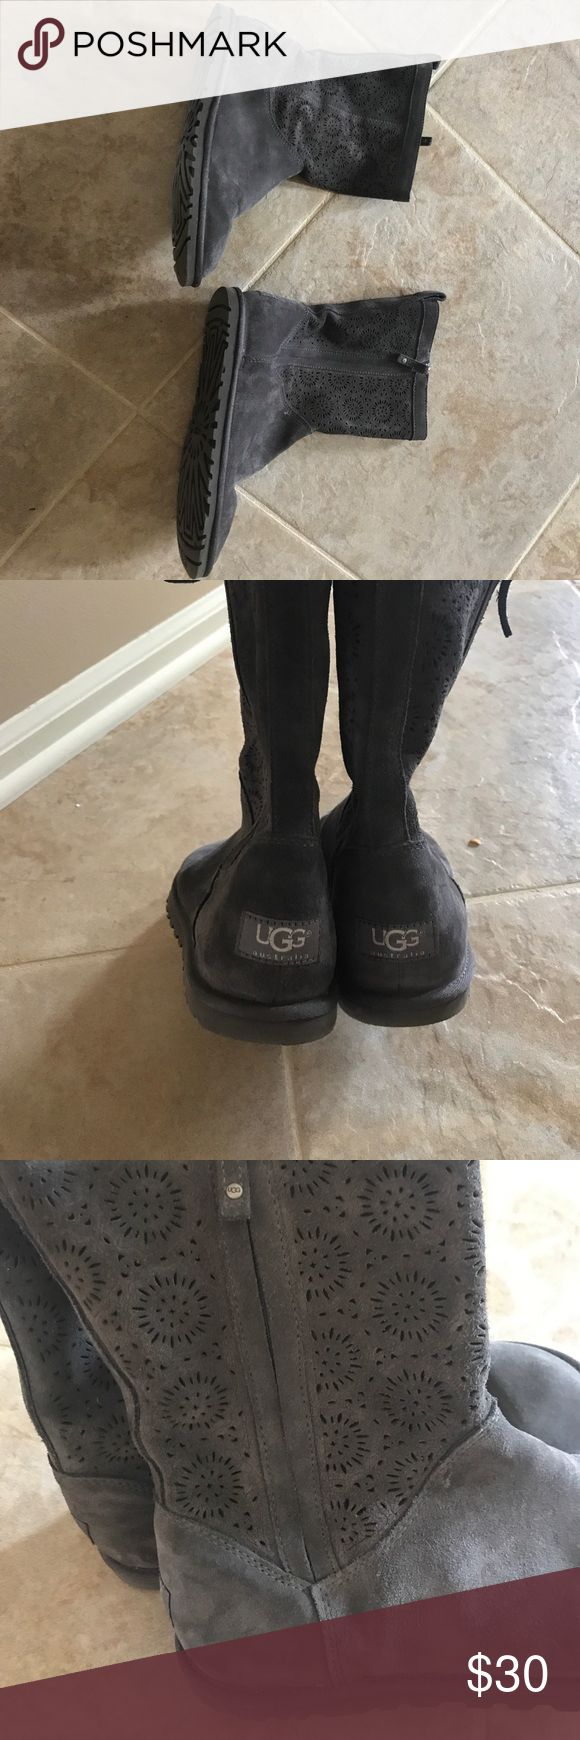 Gray suede size 9 uggs! Grey suede size 9 uggs with zipper up the side! Light weight, fur lined on sole. Good condition!! UGG Shoes Winter & Rain Boots